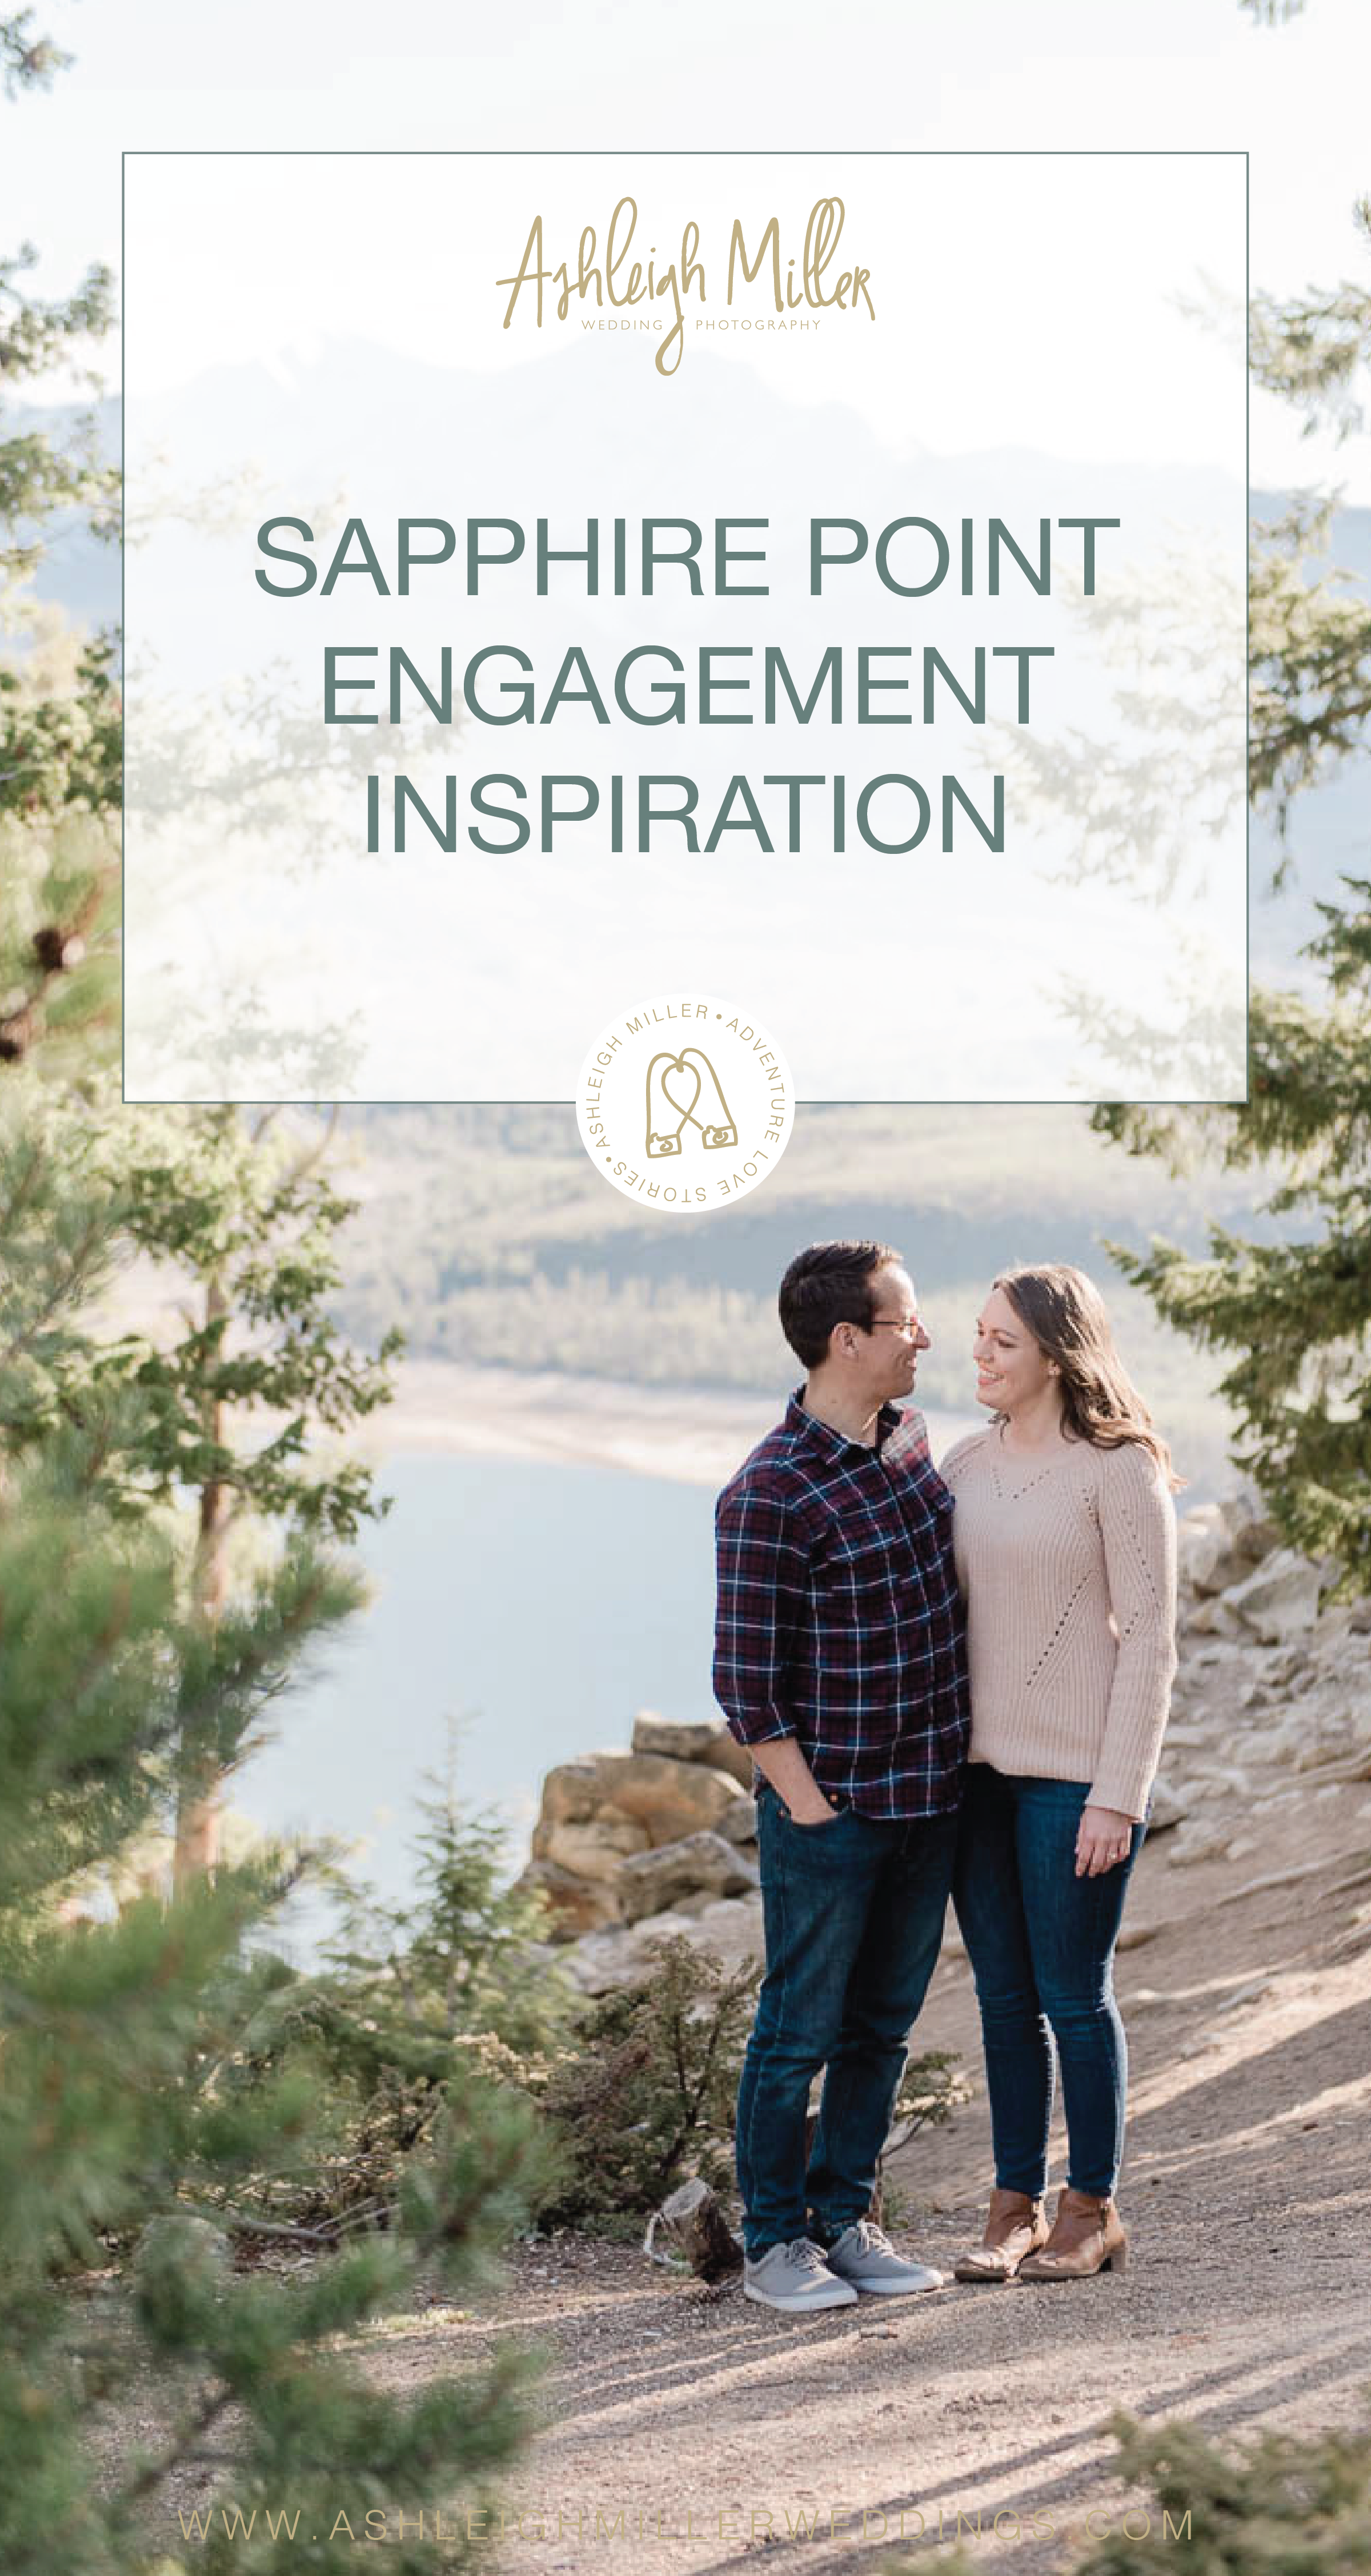 Colorado hiking adventure engagement session inspiration on a mountain lake. This Sapphire Point Engagment Session was perfect with plaid, sweaters, jeans, alpine lake, forests and love. Ashleigh Miller Wedding and Elopement Photographer serving Denver, Breckenridge, Summit, Dillion, Silverthorn, Telluride, Ouray and Boulder.